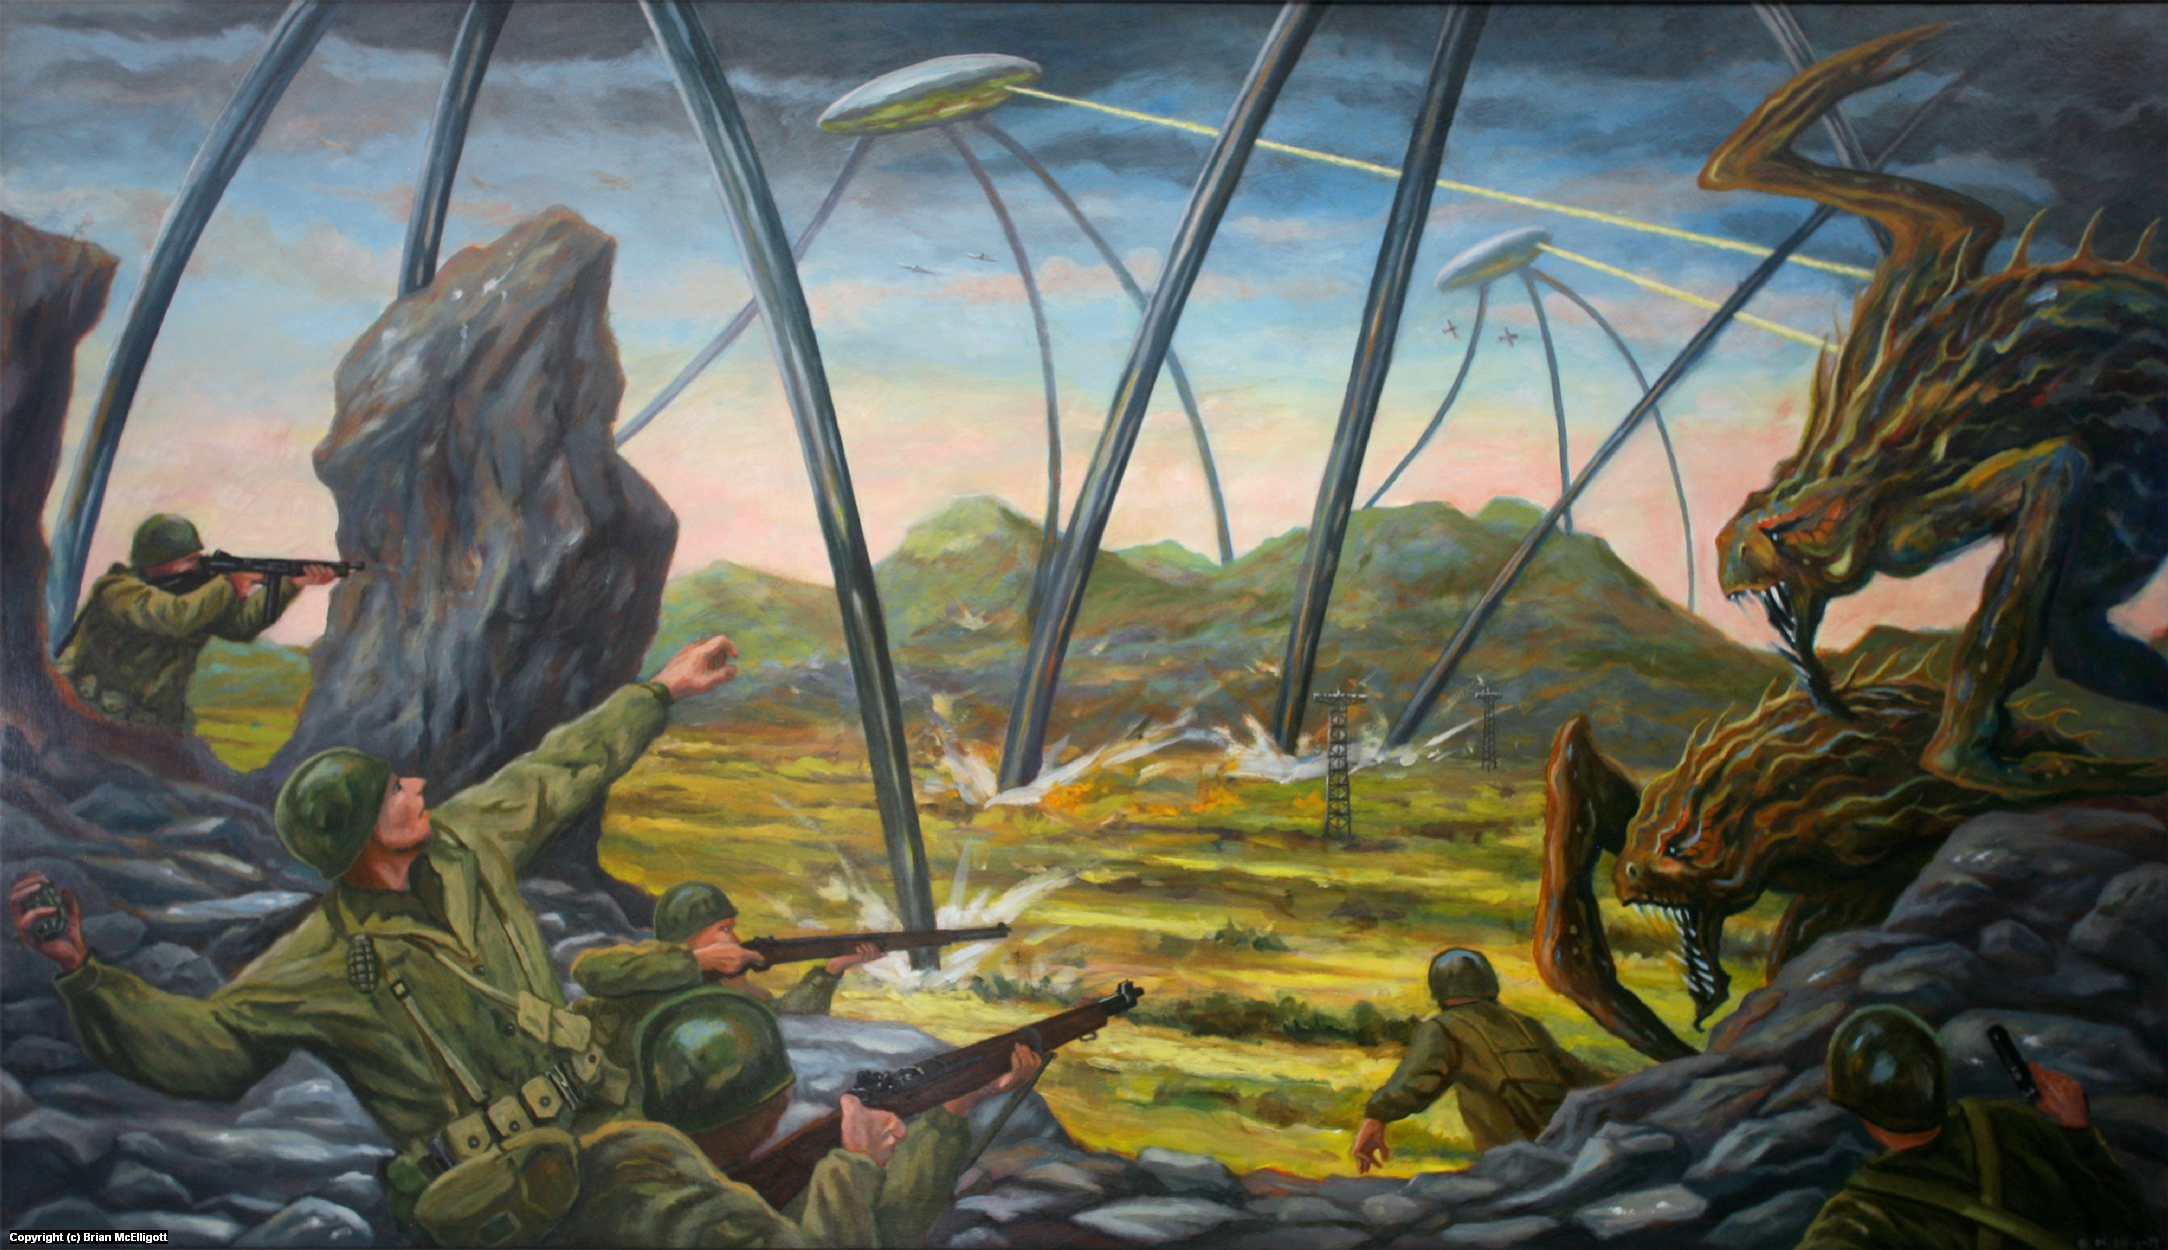 The War of the Worlds, New jersey, 1938 Artwork by Brian McElligott